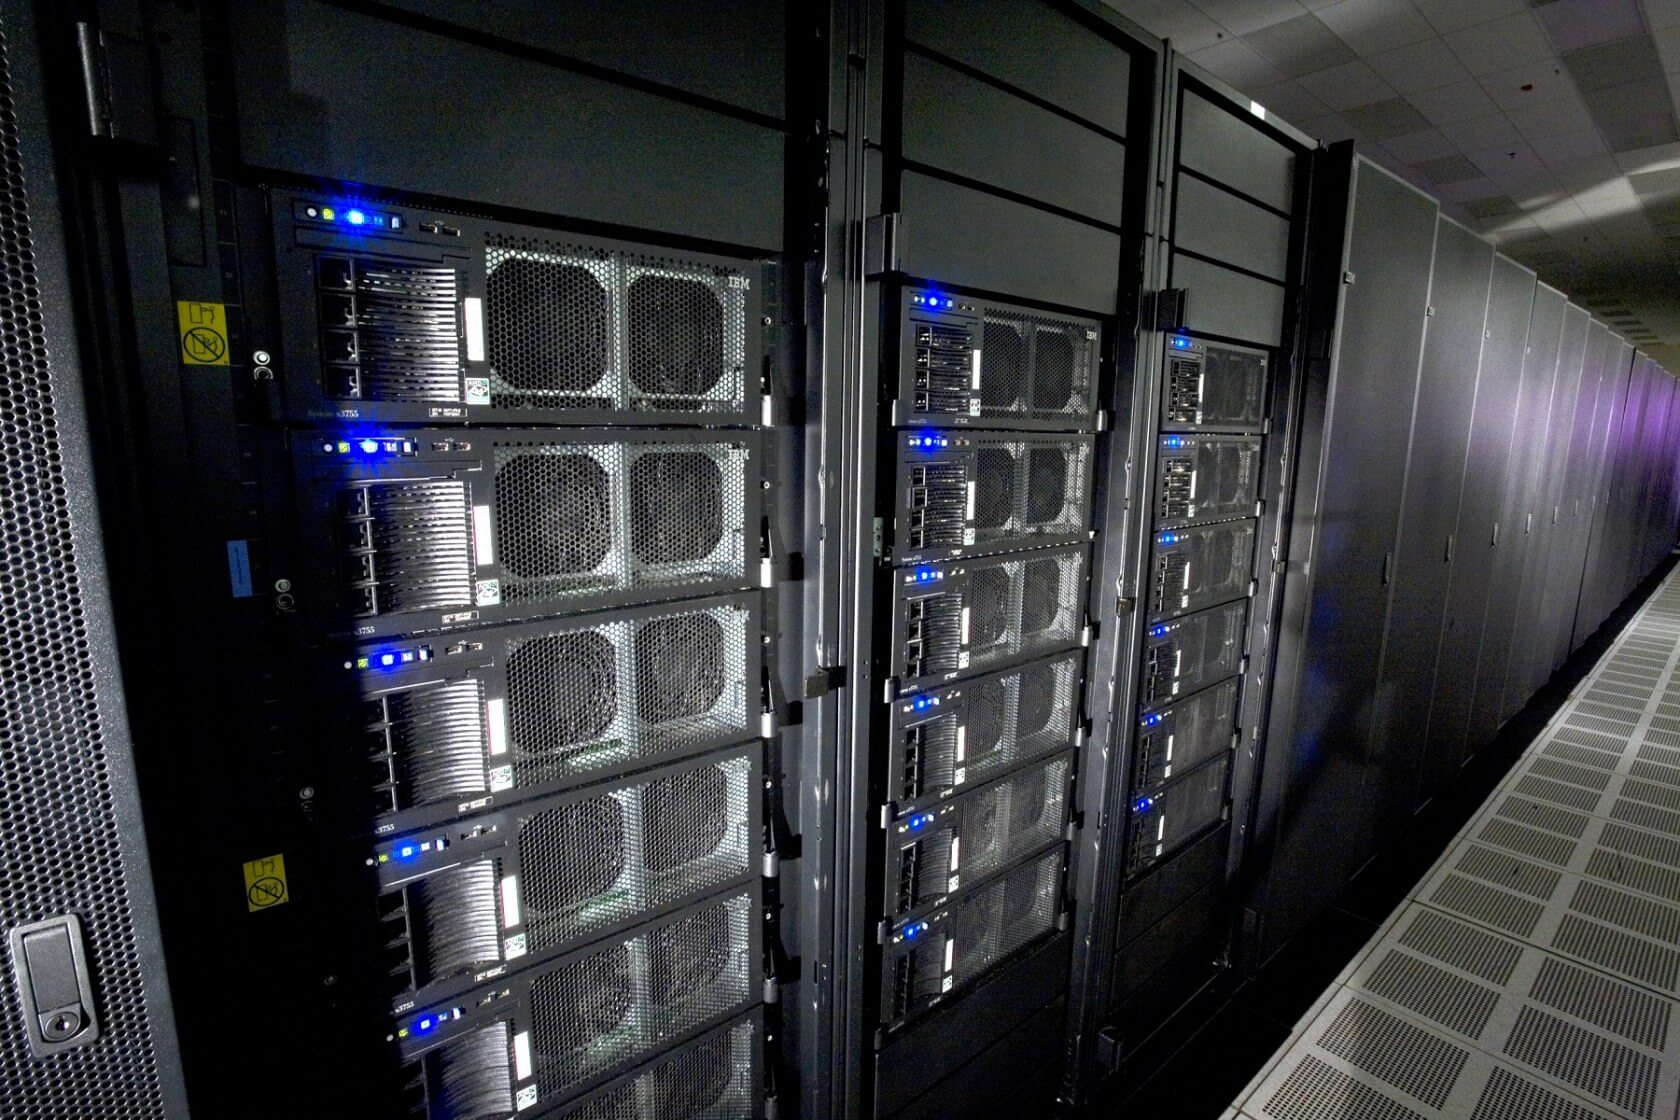 HPE is building the world's largest ARM-based supercomputer